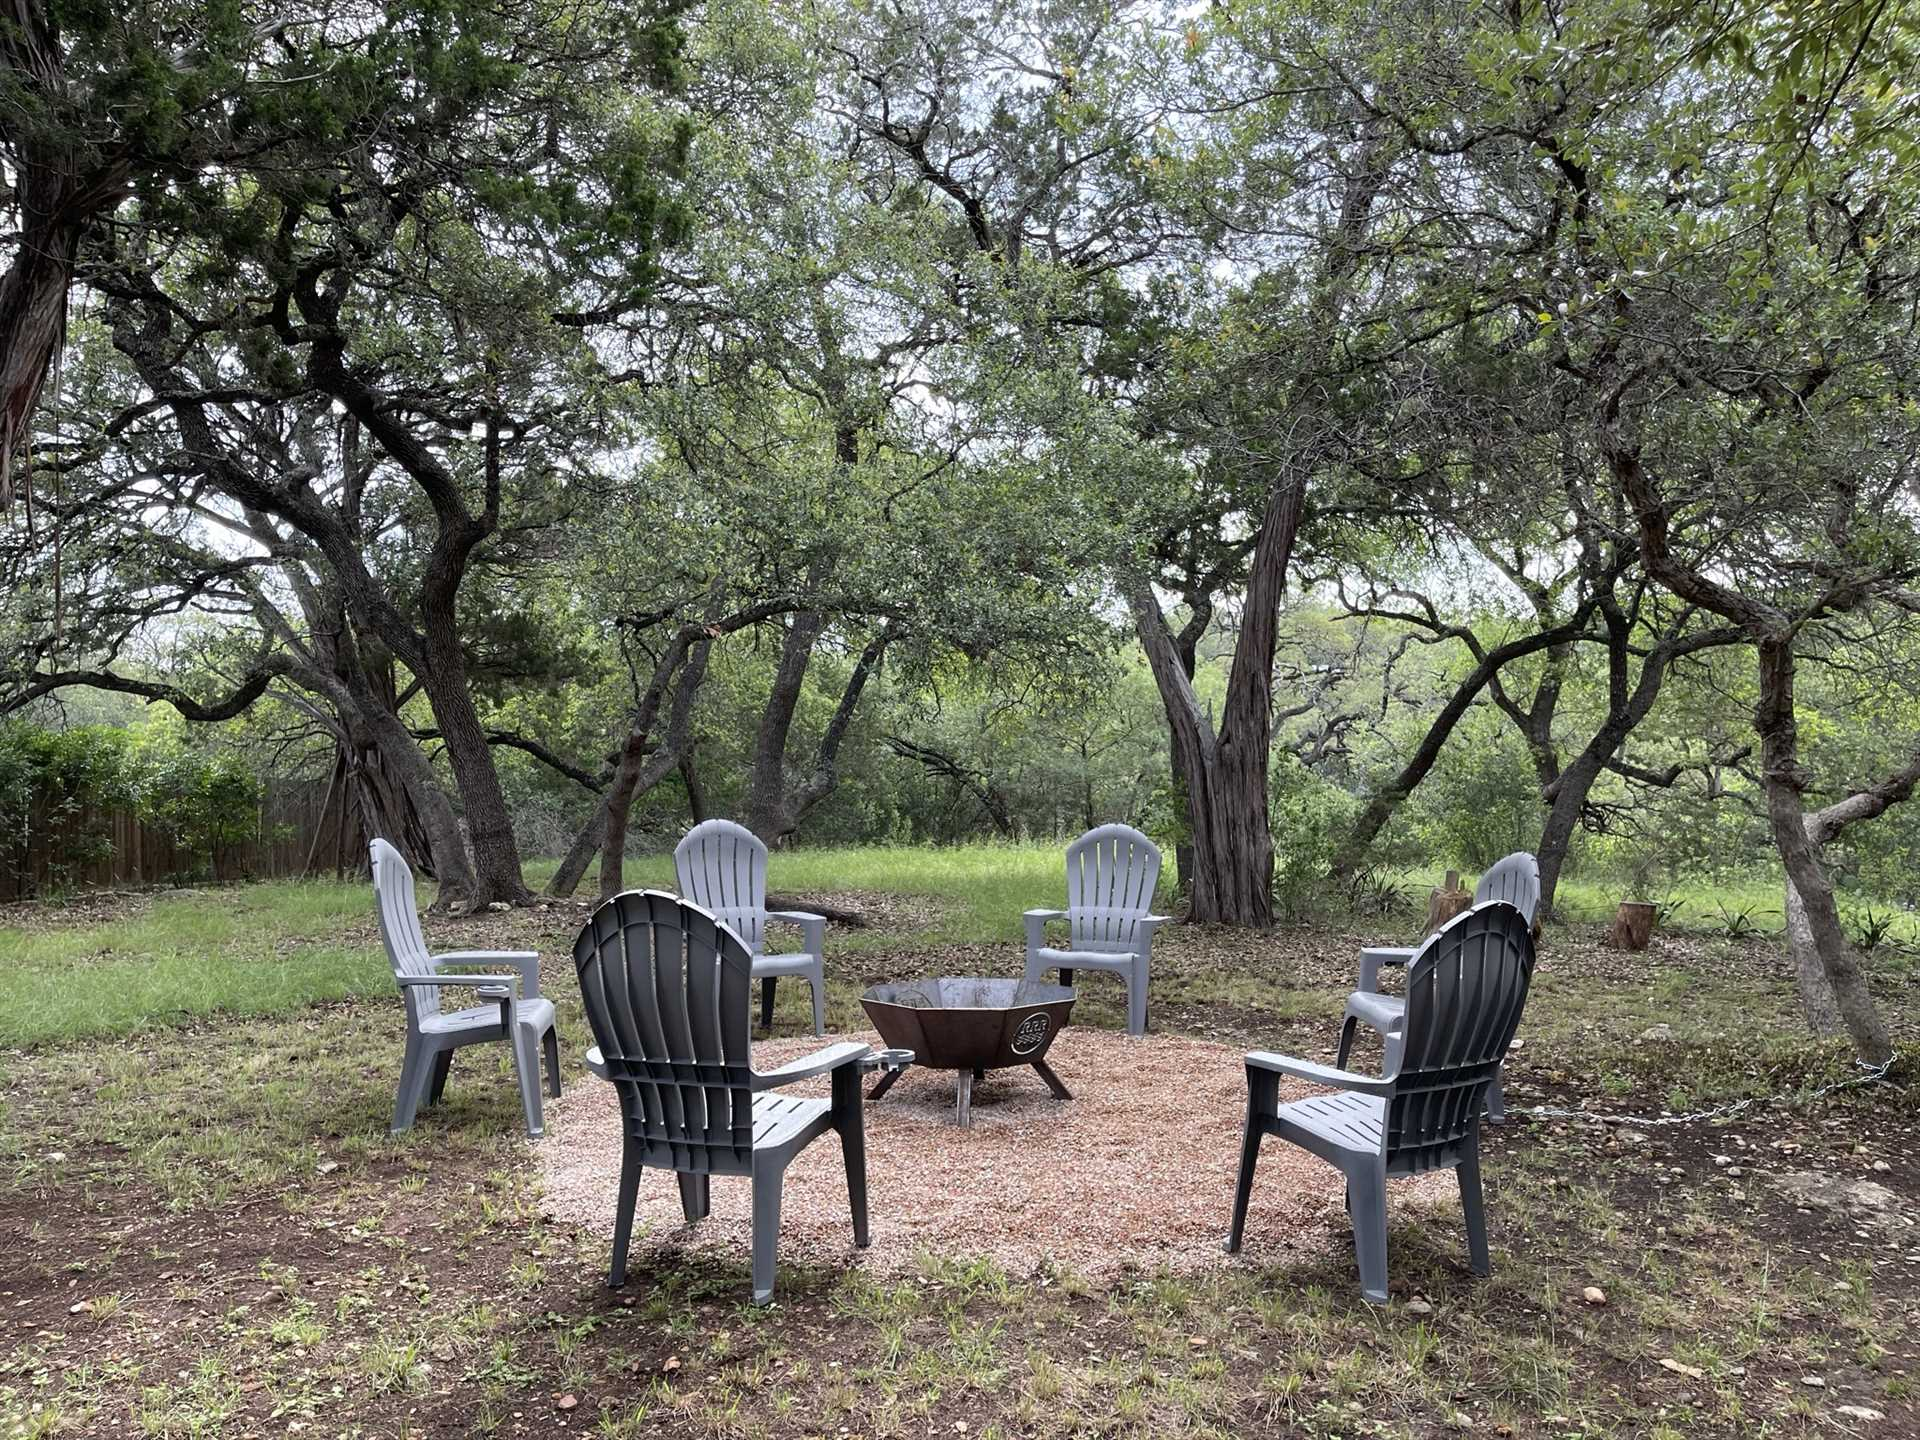 Comfortable seating encircles the fire pit, and it's the perfect stage for roasting snacks, chatting, and stargazing!